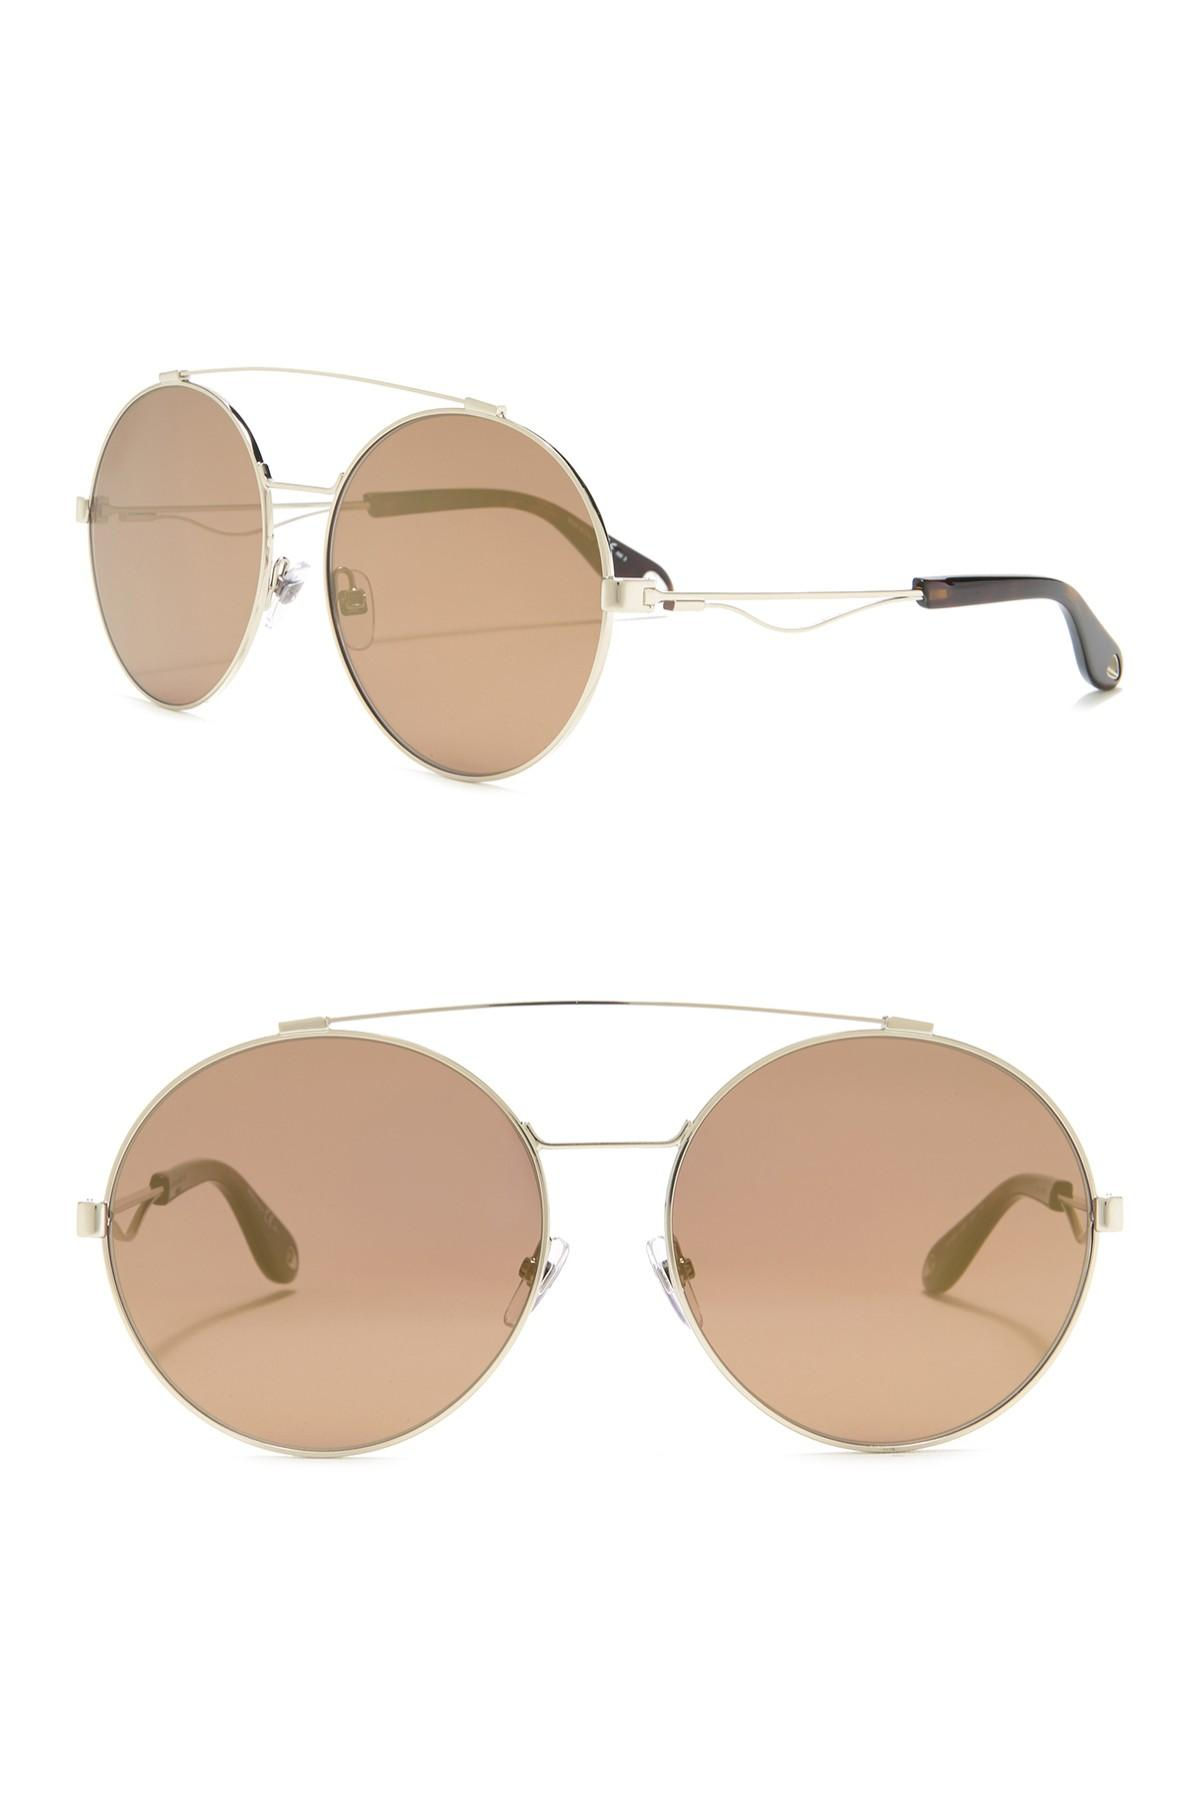 cc7a224b3828 Givenchy 62mm Oval Aviator Sunglasses - Lyst